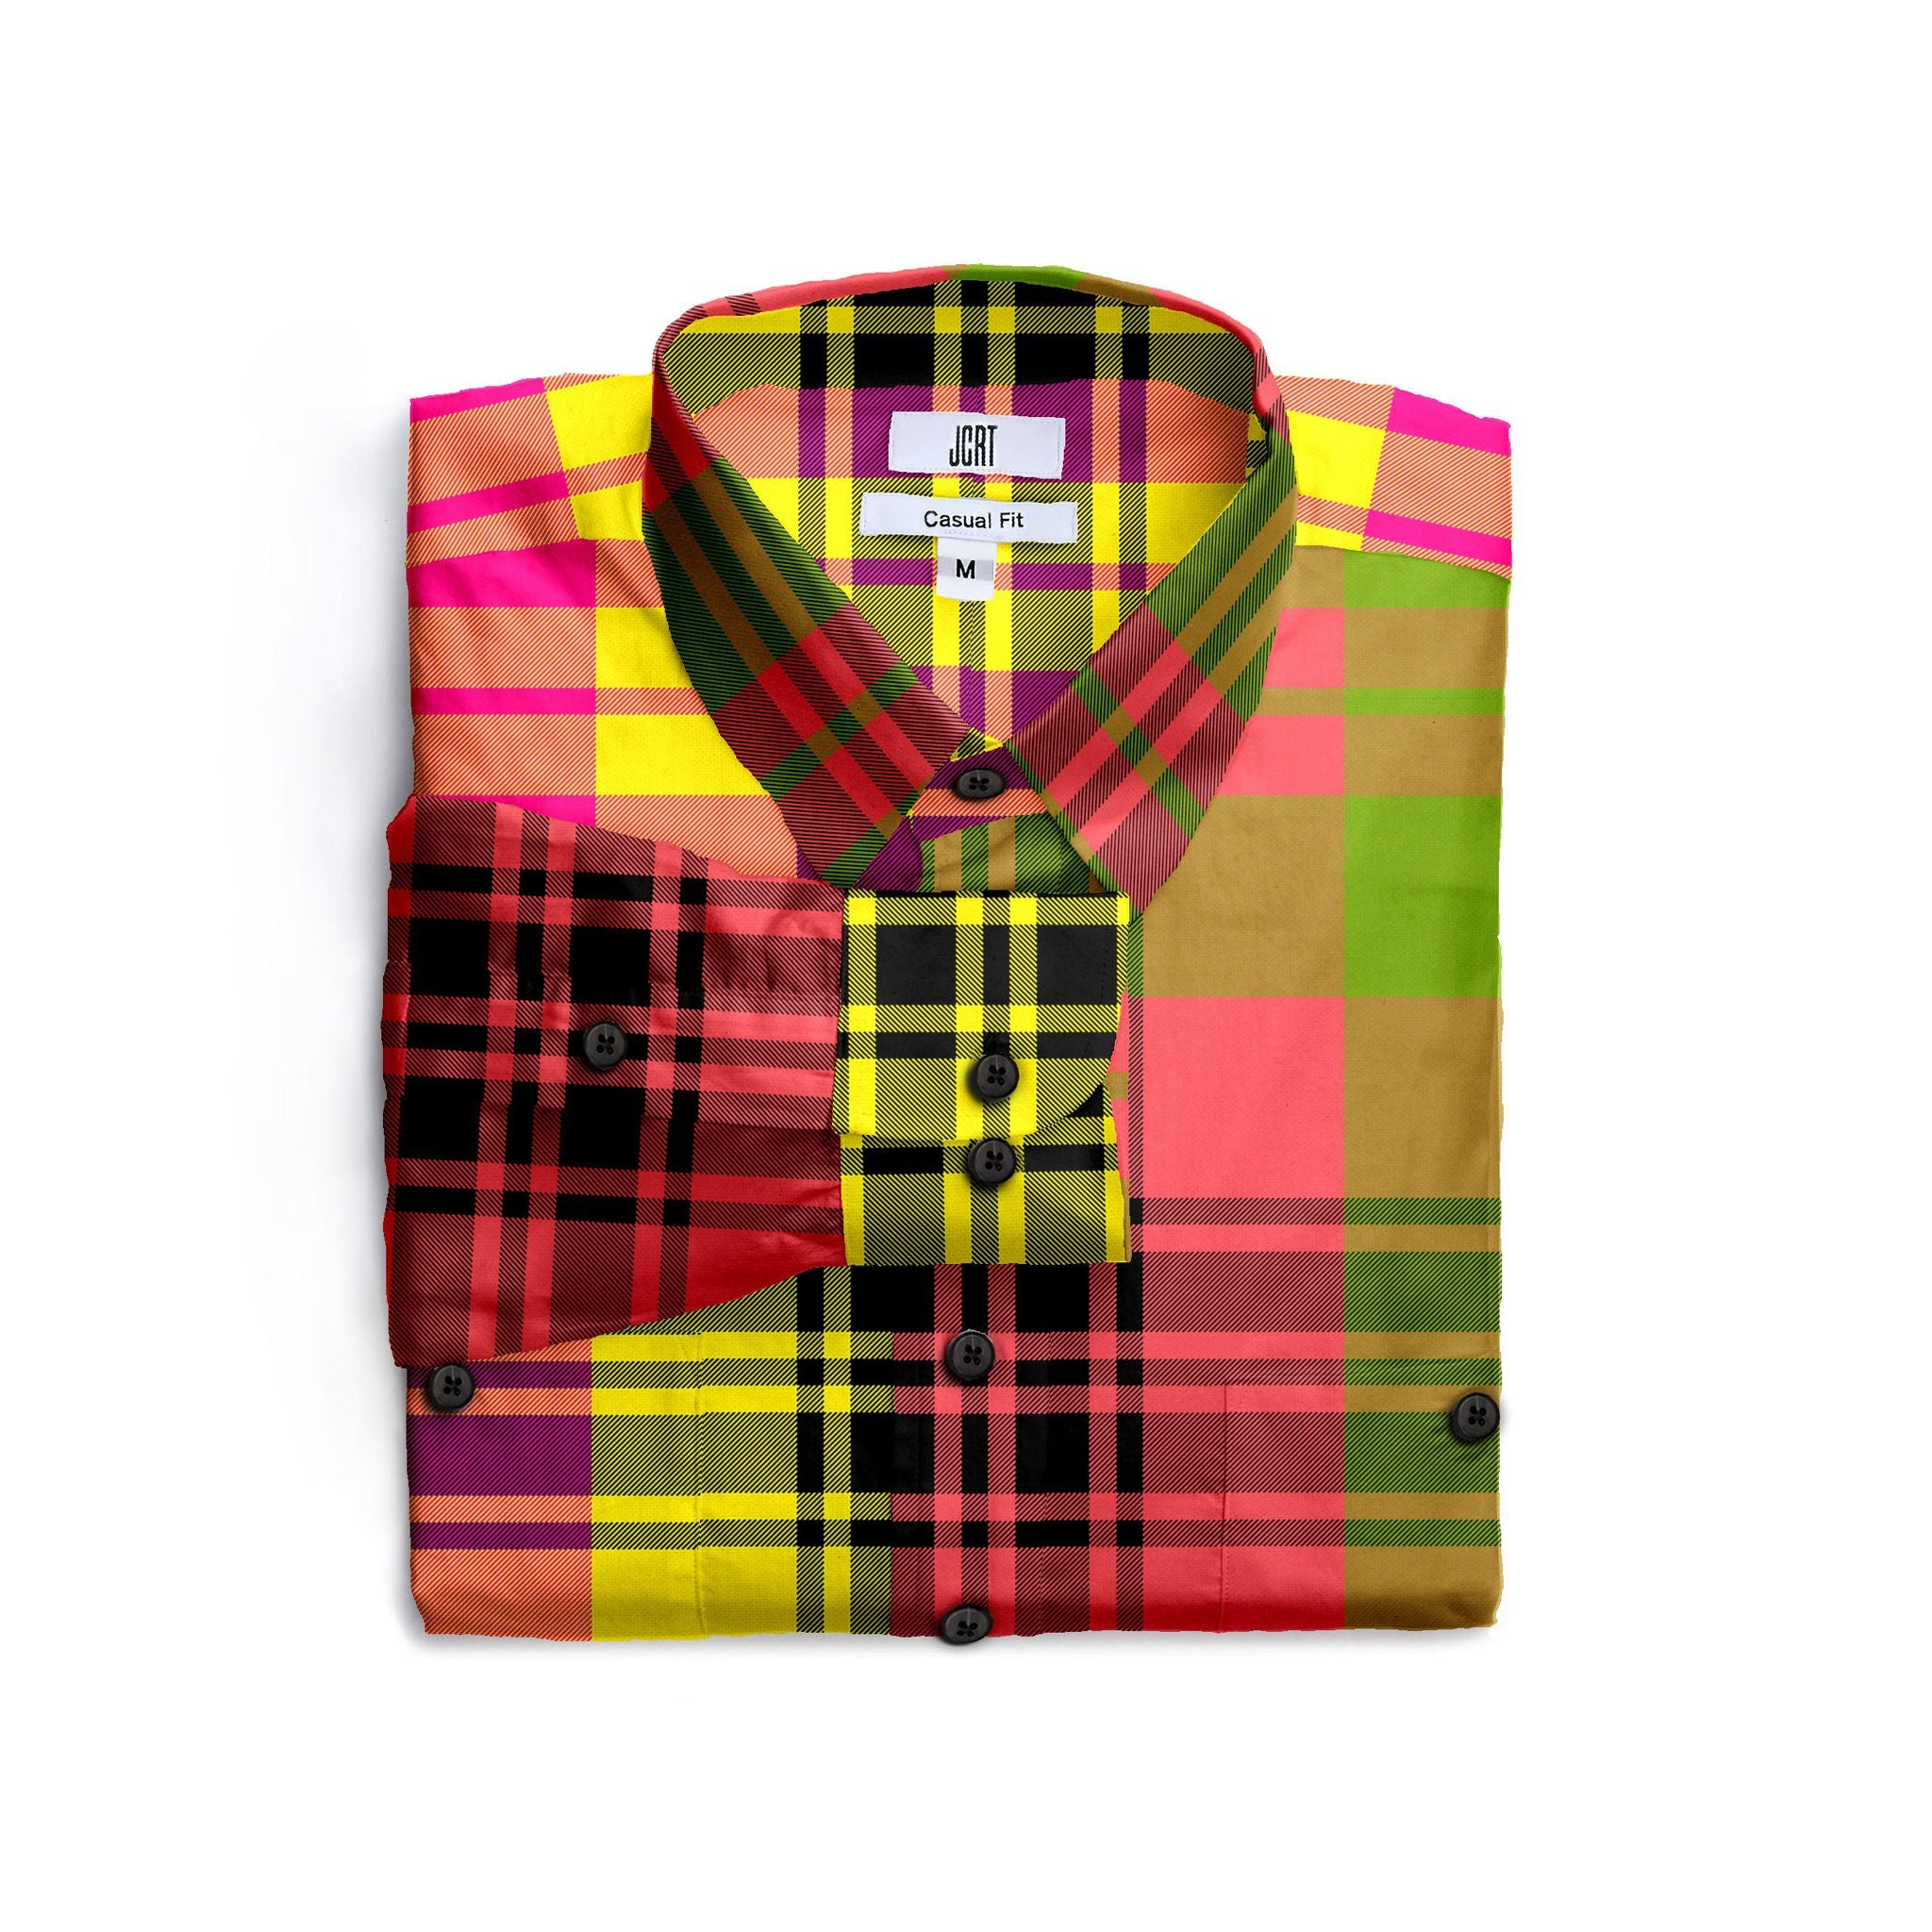 The Never Mind The Bollocks Mixed Plaid Long Sleeve Shirt